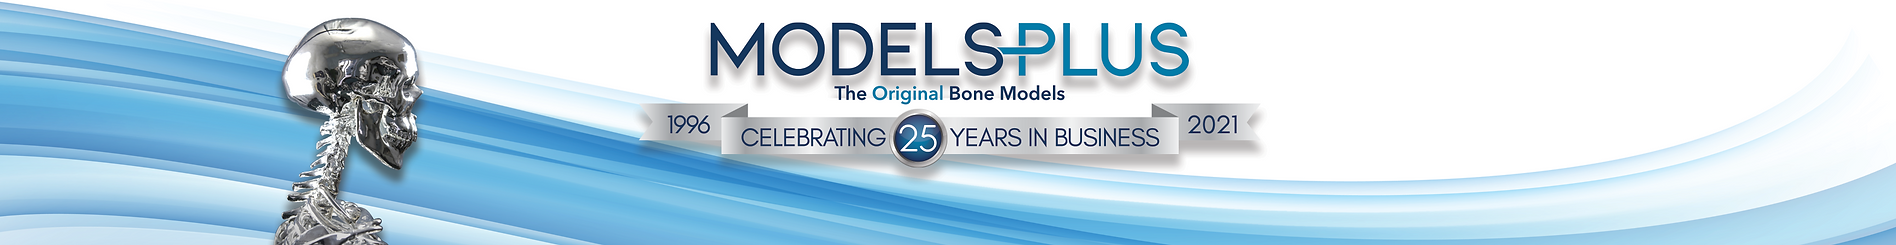 Models Plus | The Original Bone Models | Celebrating 25 Years in Business